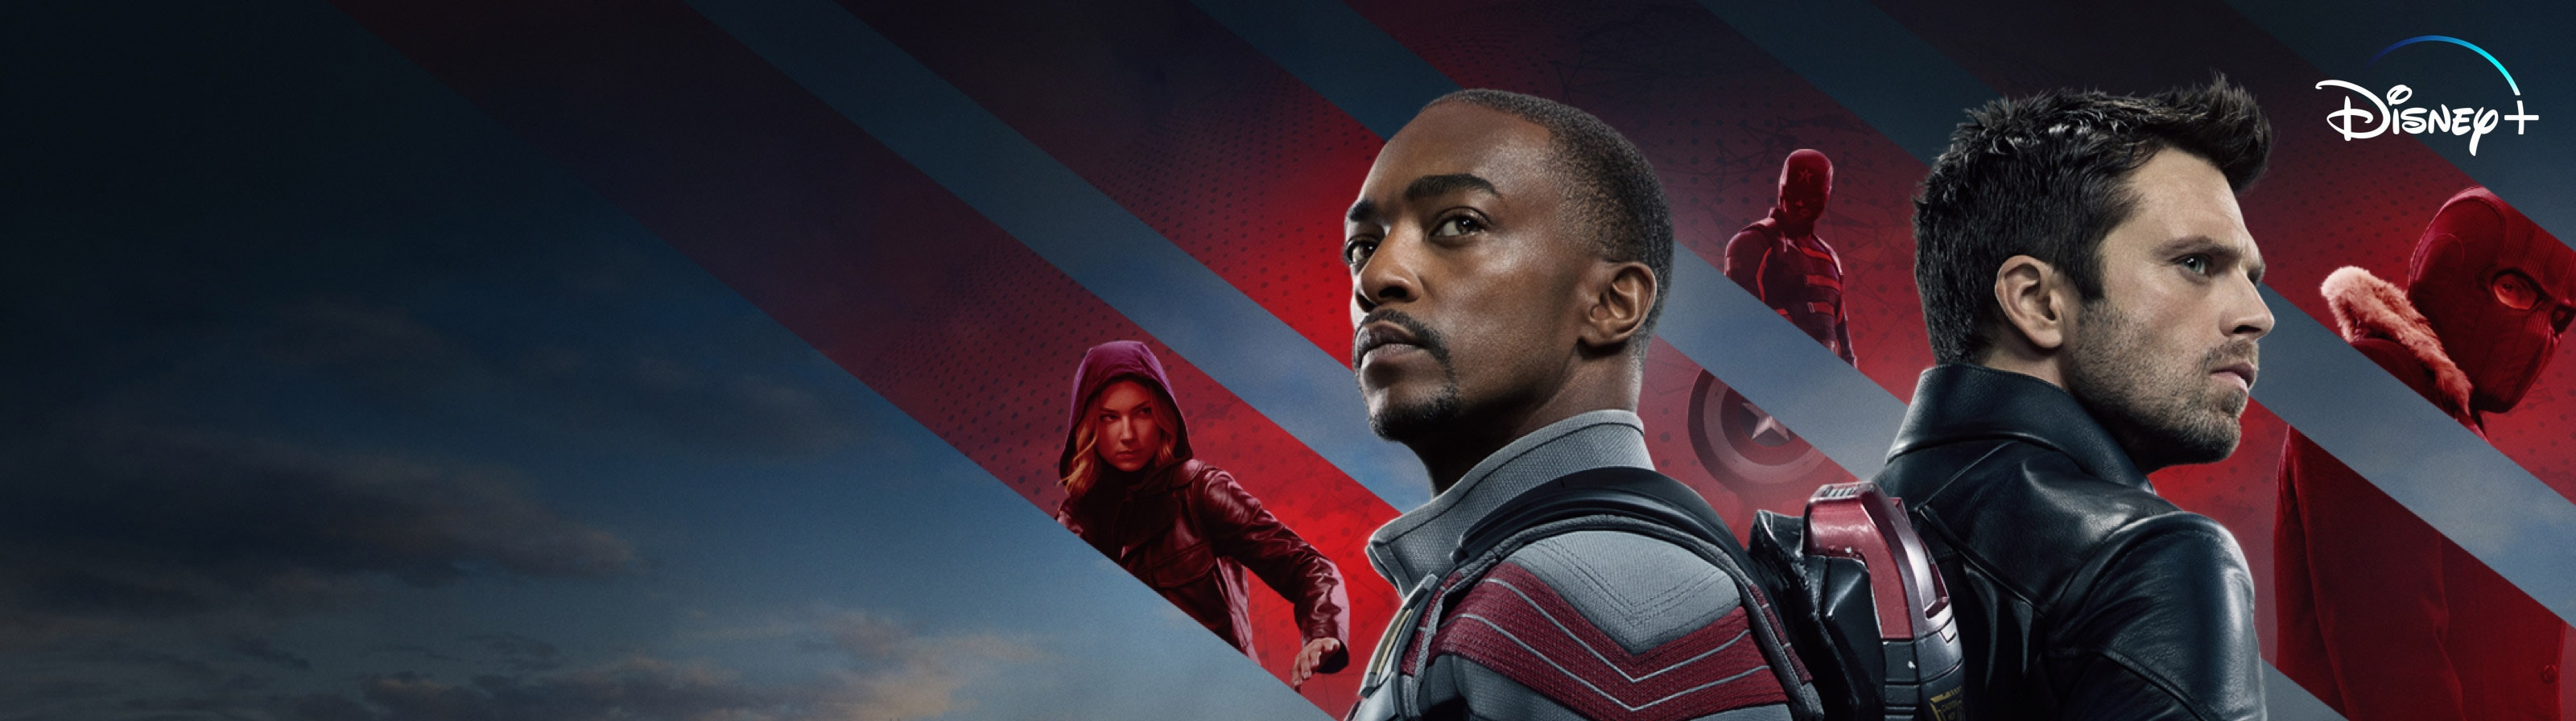 The Falcon and the Winter Soldier streaming now on Disney+